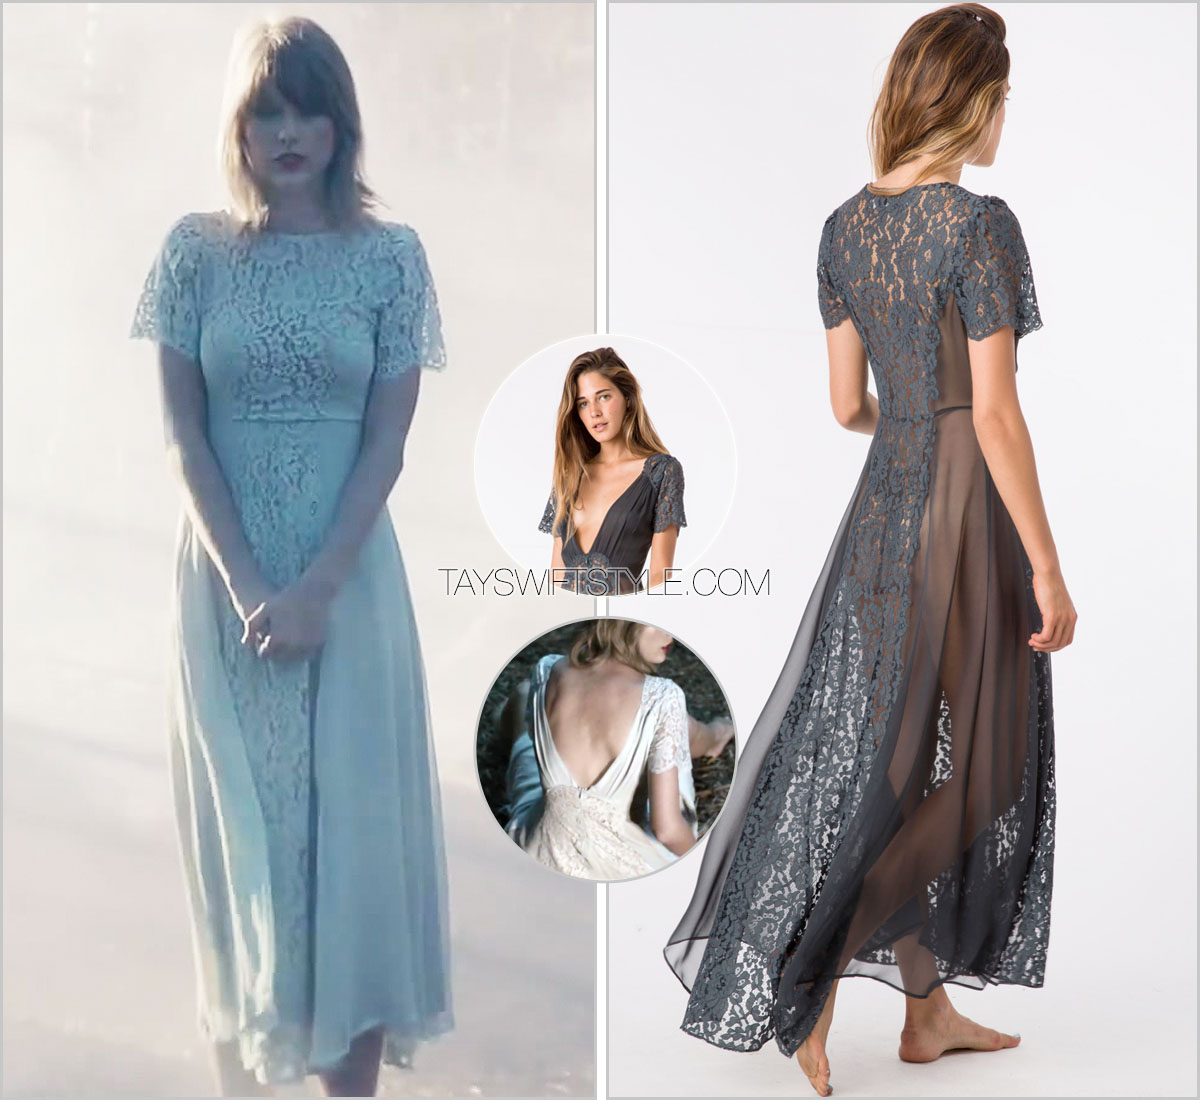 taylor swift style music video dress